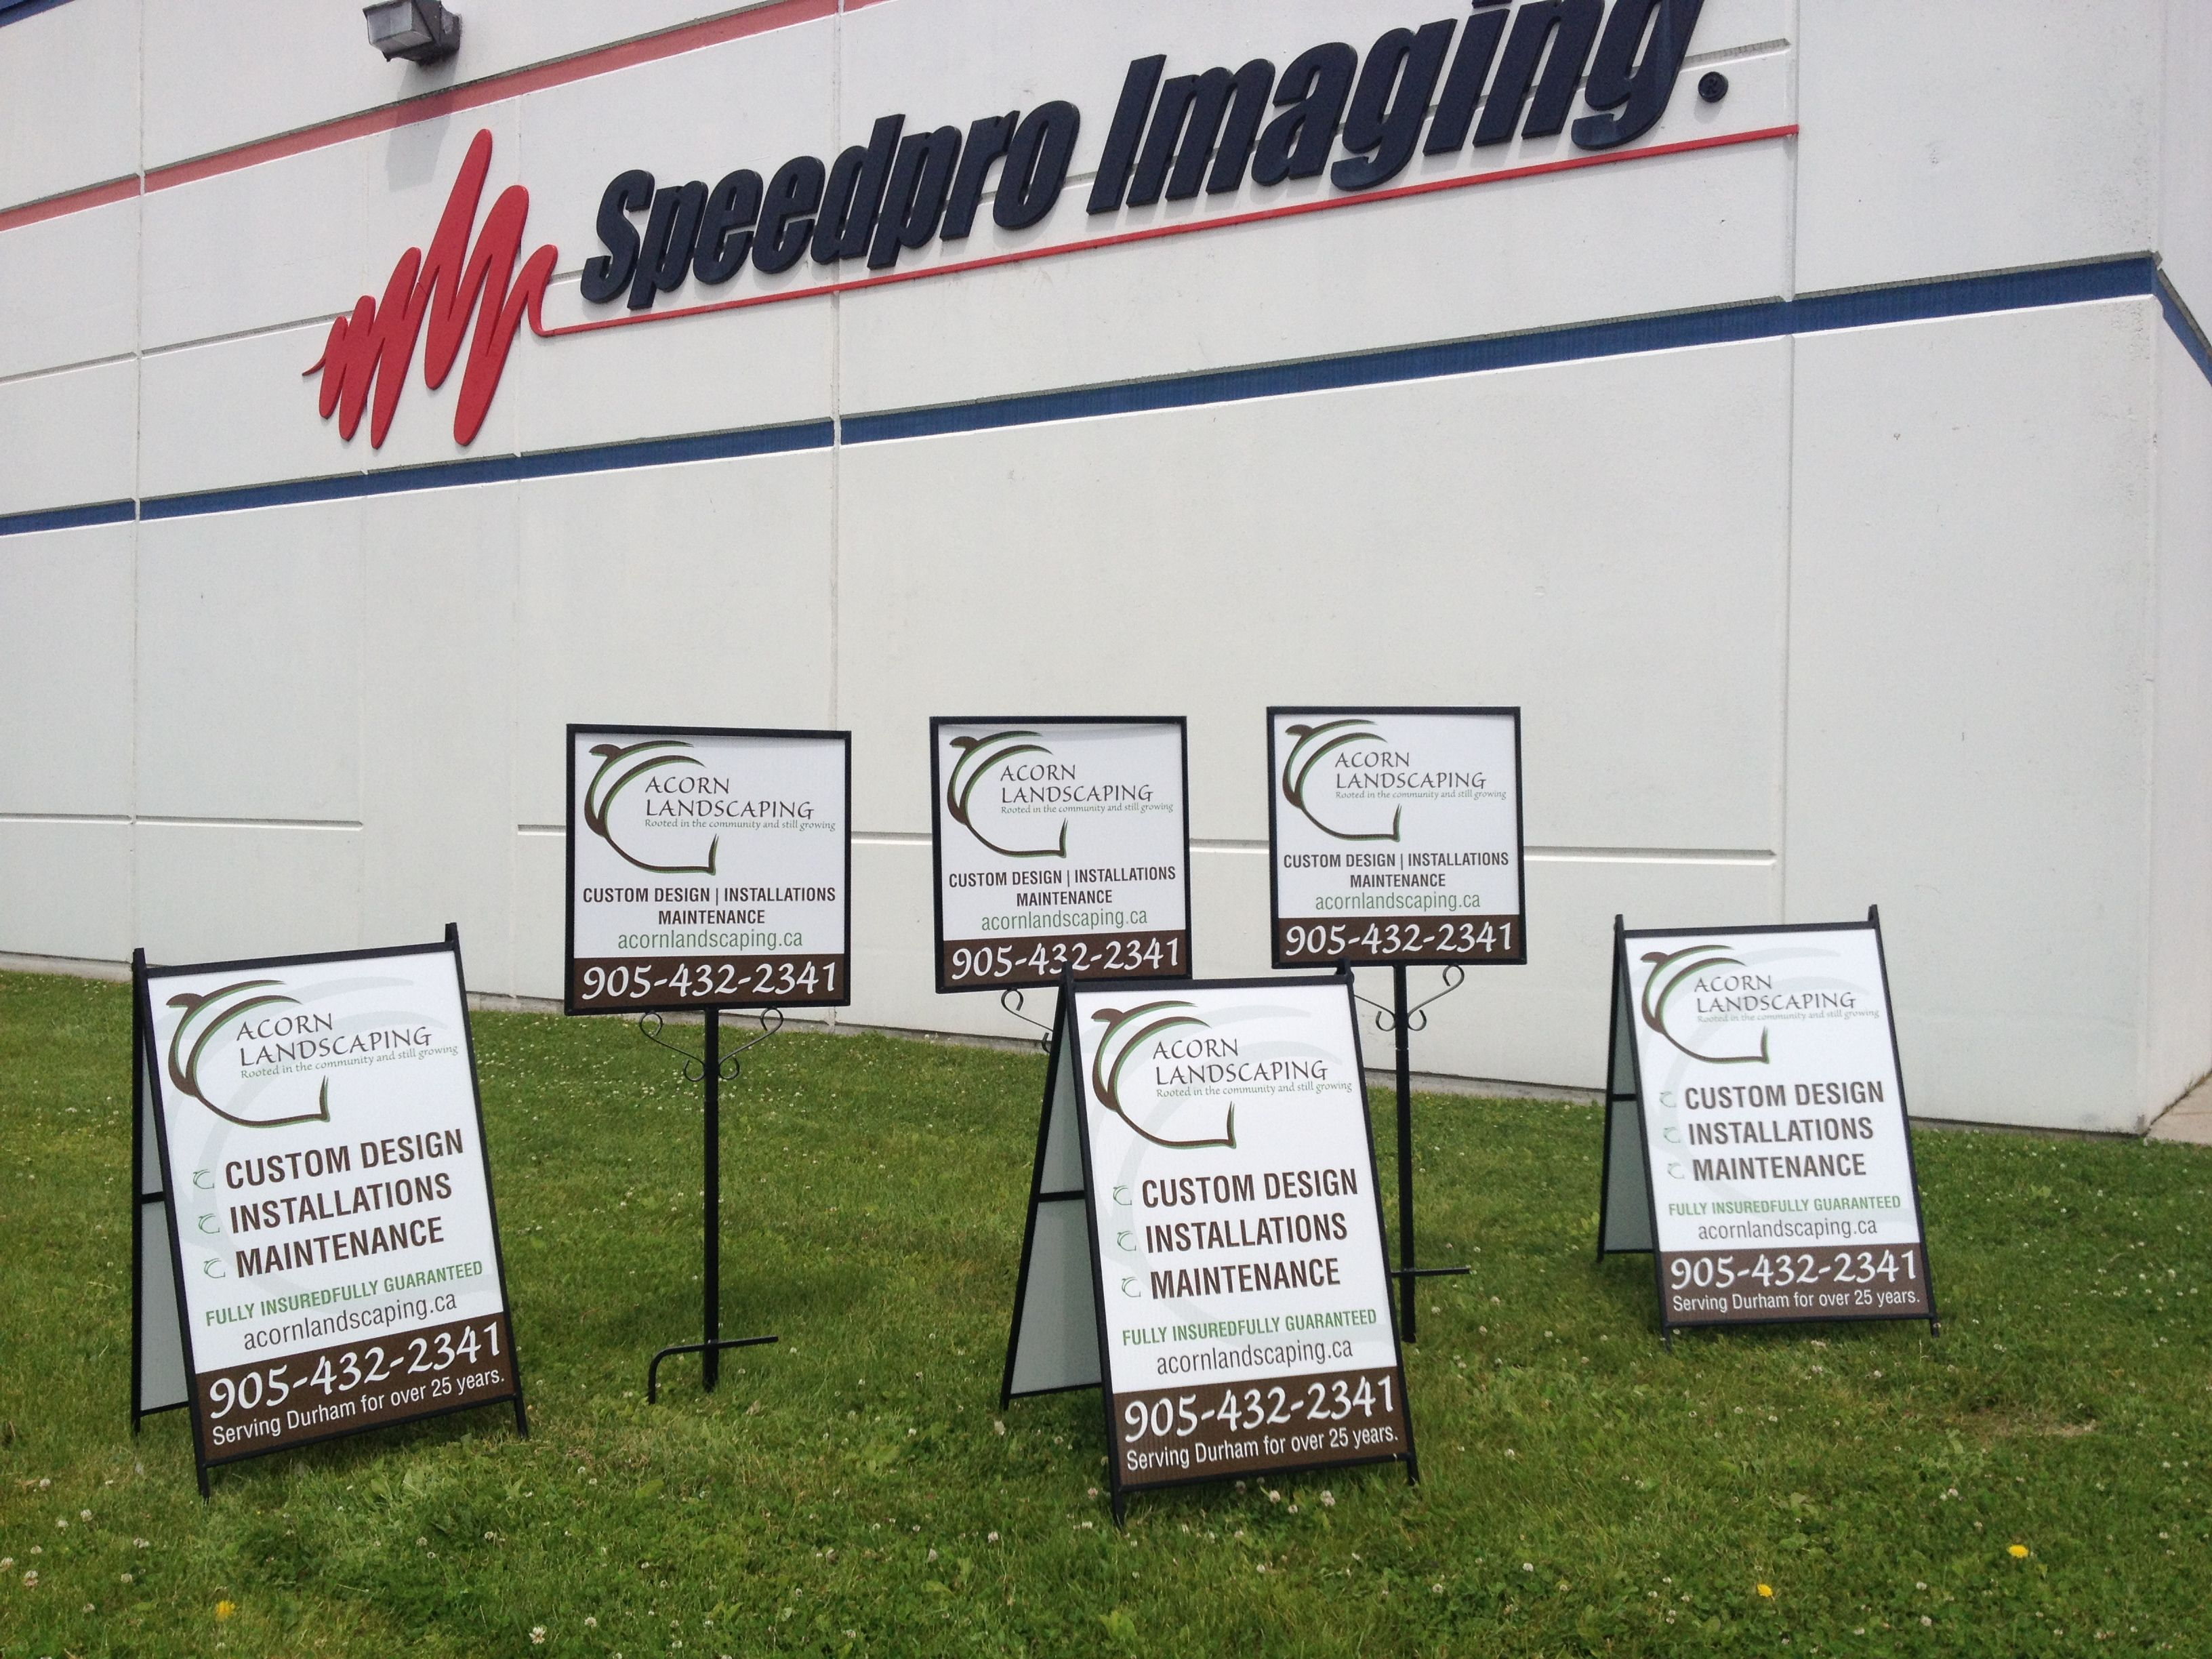 Awesome Lawn Signs Completed For Acorn Landscaping 3 Double Sided Metal A Frames With Coroplast And 3 Double Sided Outdoor Signage Lawn Sign Window Graphics